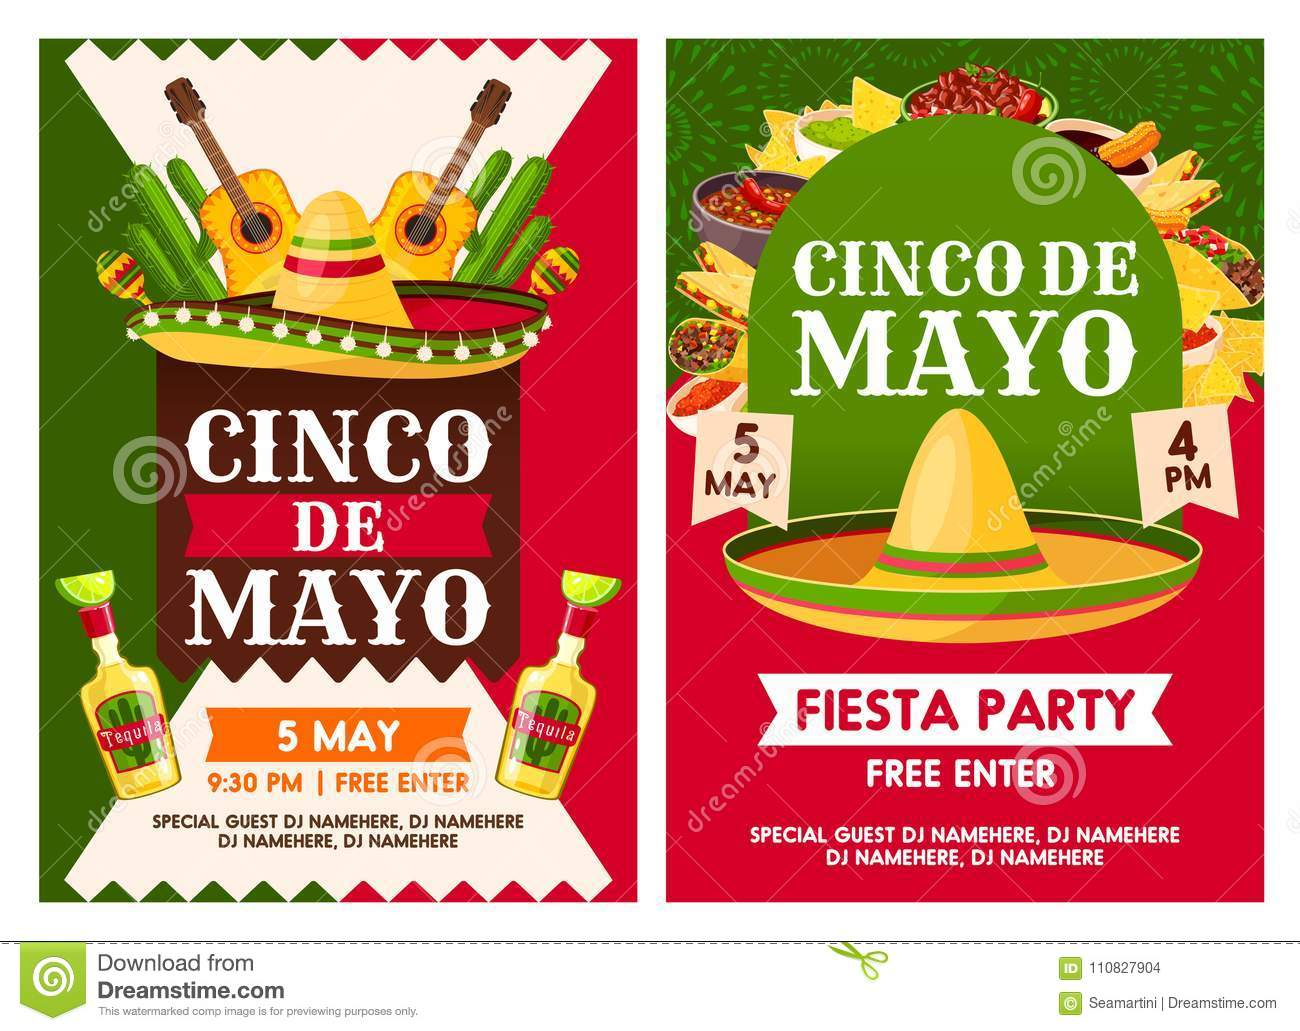 Cinco De Mayo Mexican National Holiday Cele Tion Fiesta Party Invitation Vector Posters Of Mexican Traditional Tequila And Guitar Mexico Flags On